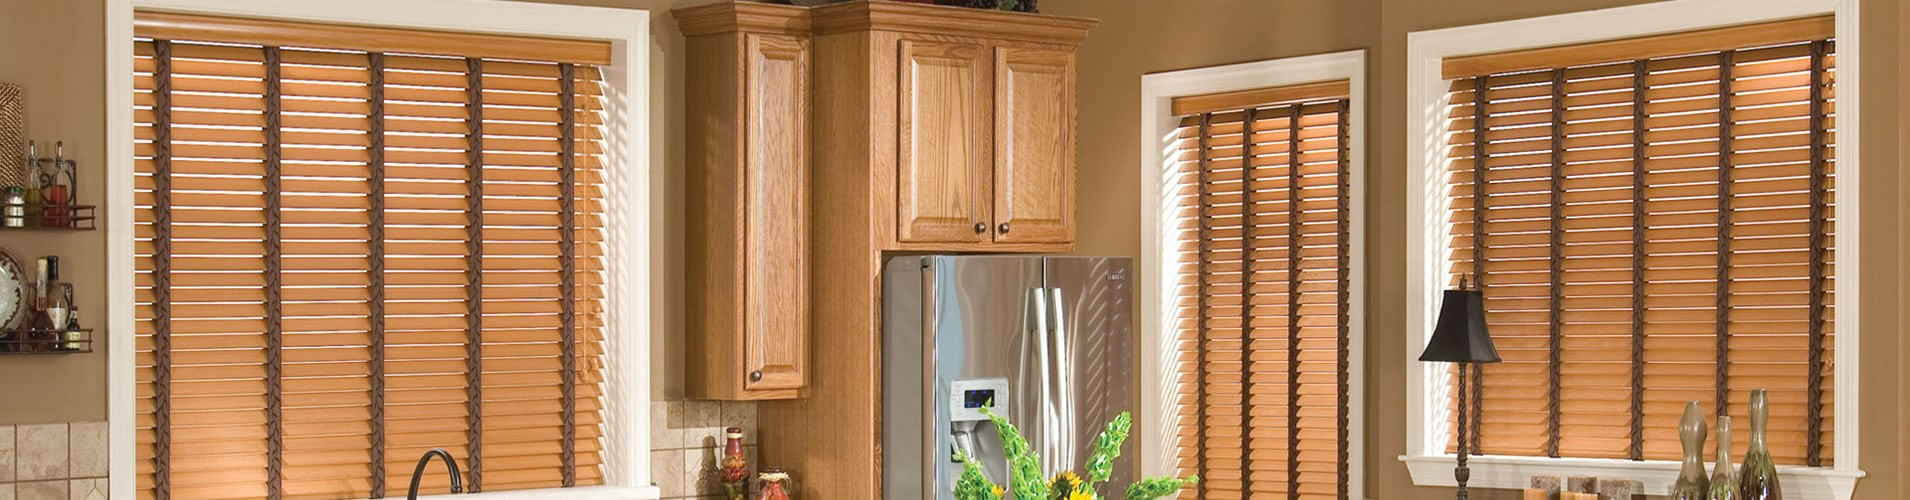 Houston Window Blinds, Texas